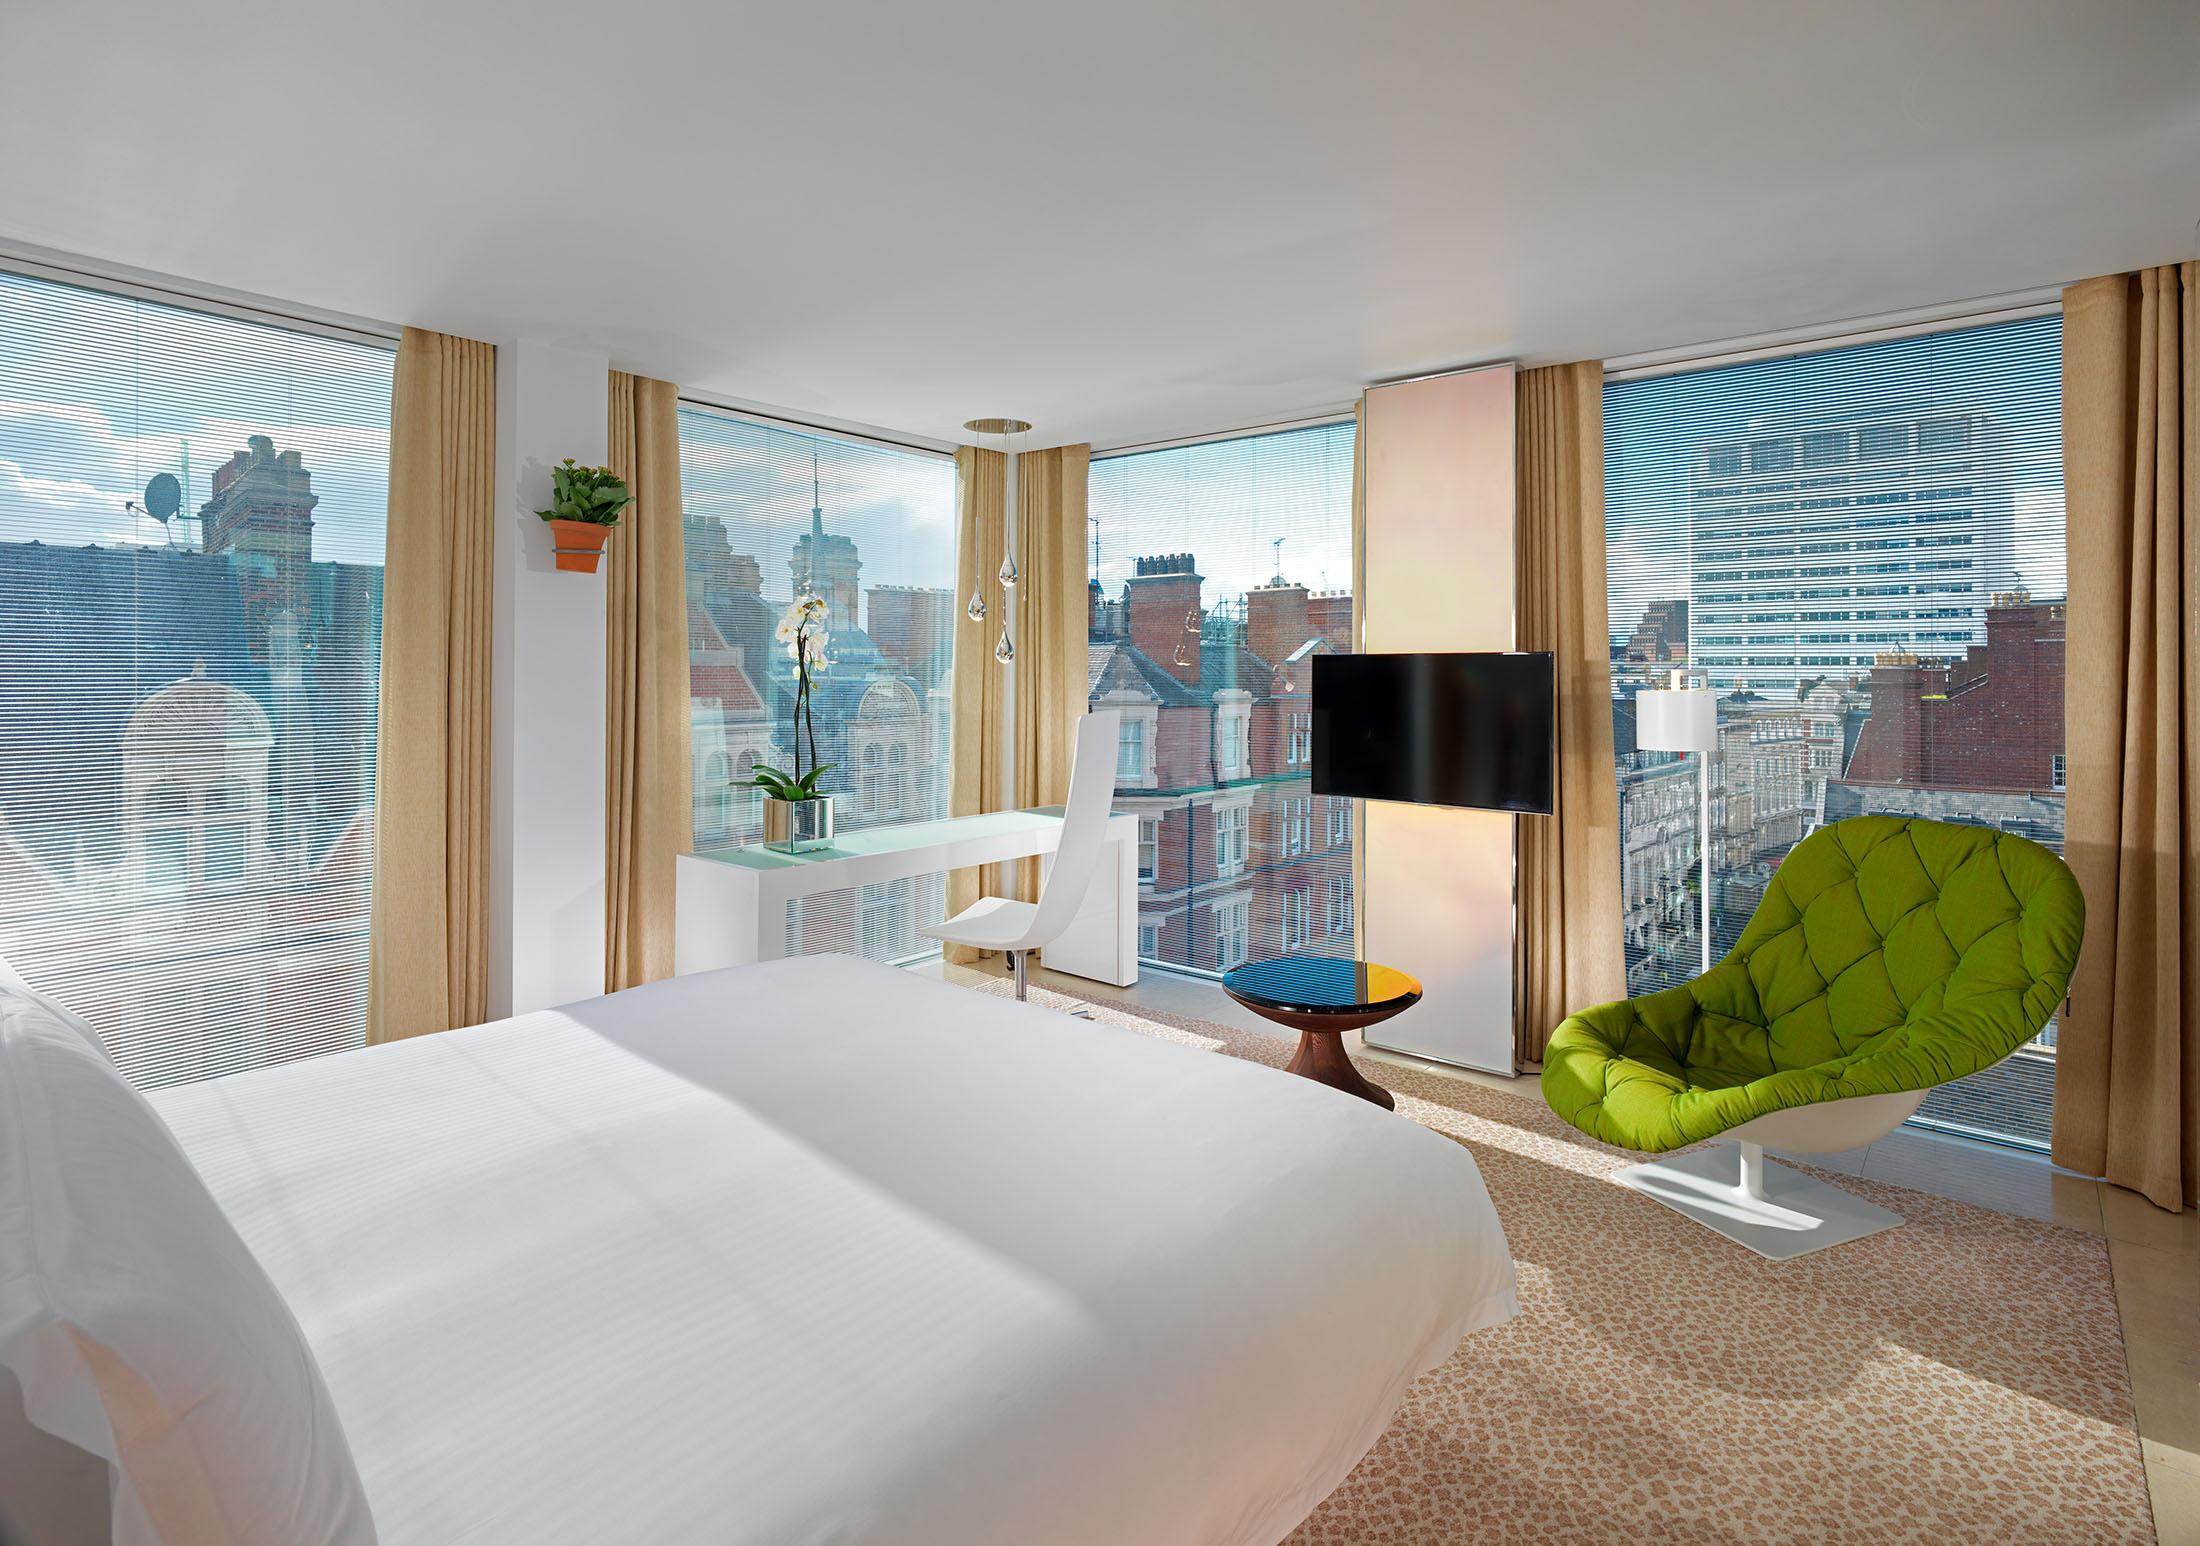 hotel bedroom with large windows overlooking city